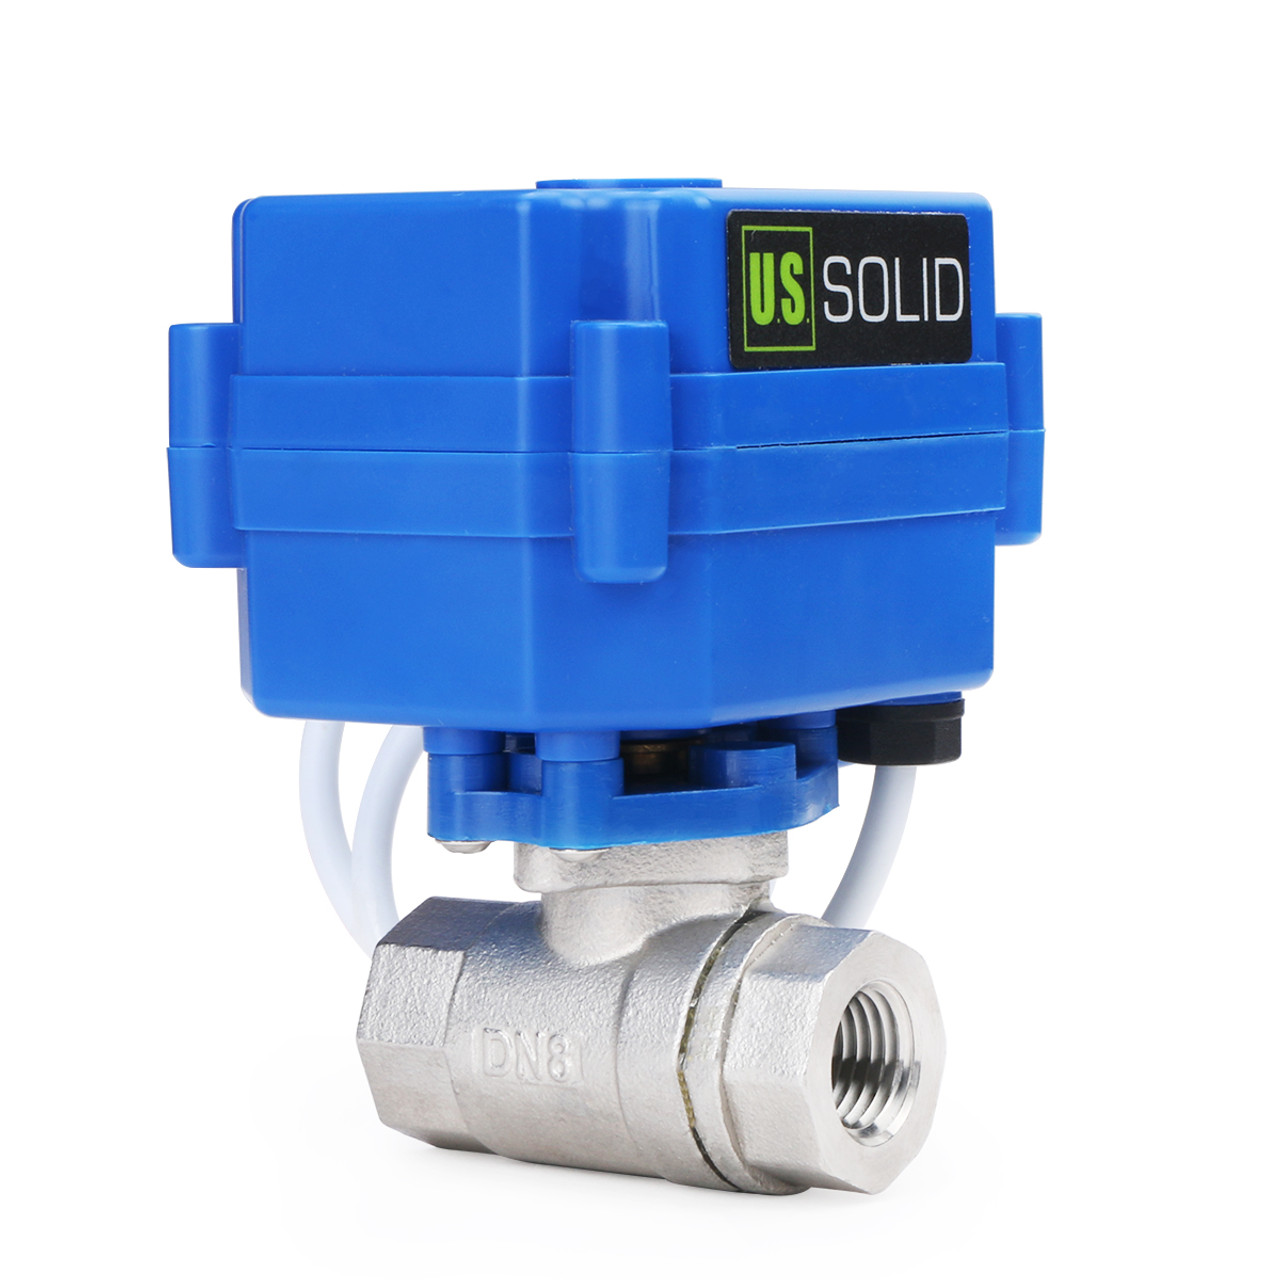 """U.S. Solid Motorized Ball Valve- 1/4"""" Stainless Steel Electrical Ball Valve with Full Port, 9-24 V AC/DC, 2 Wire Auto Return, Normally Open"""